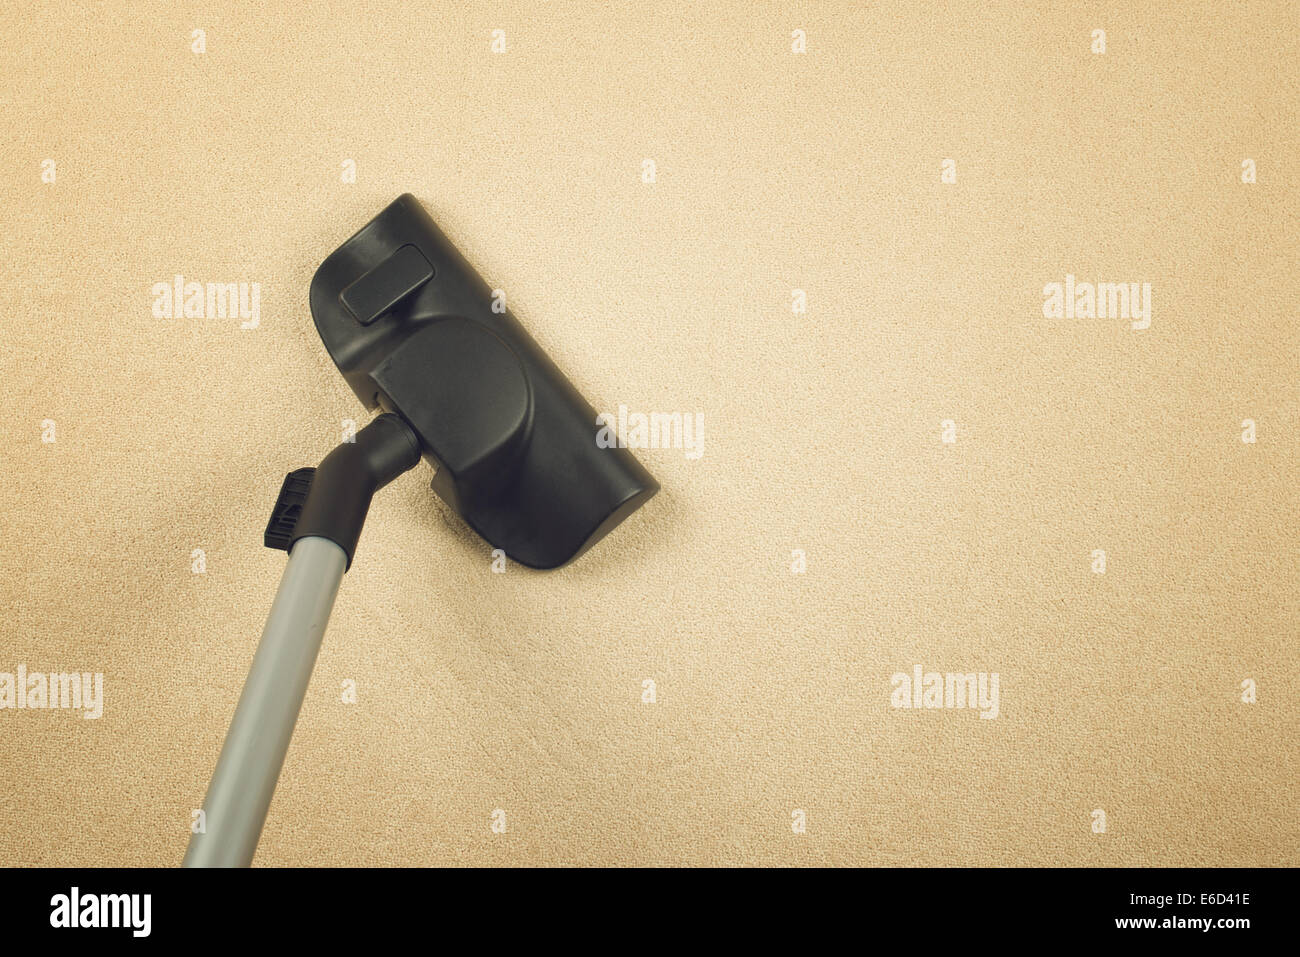 Vacuum Cleaner sweeping Brand New Carpet. Housework and home hygiene. - Stock Image